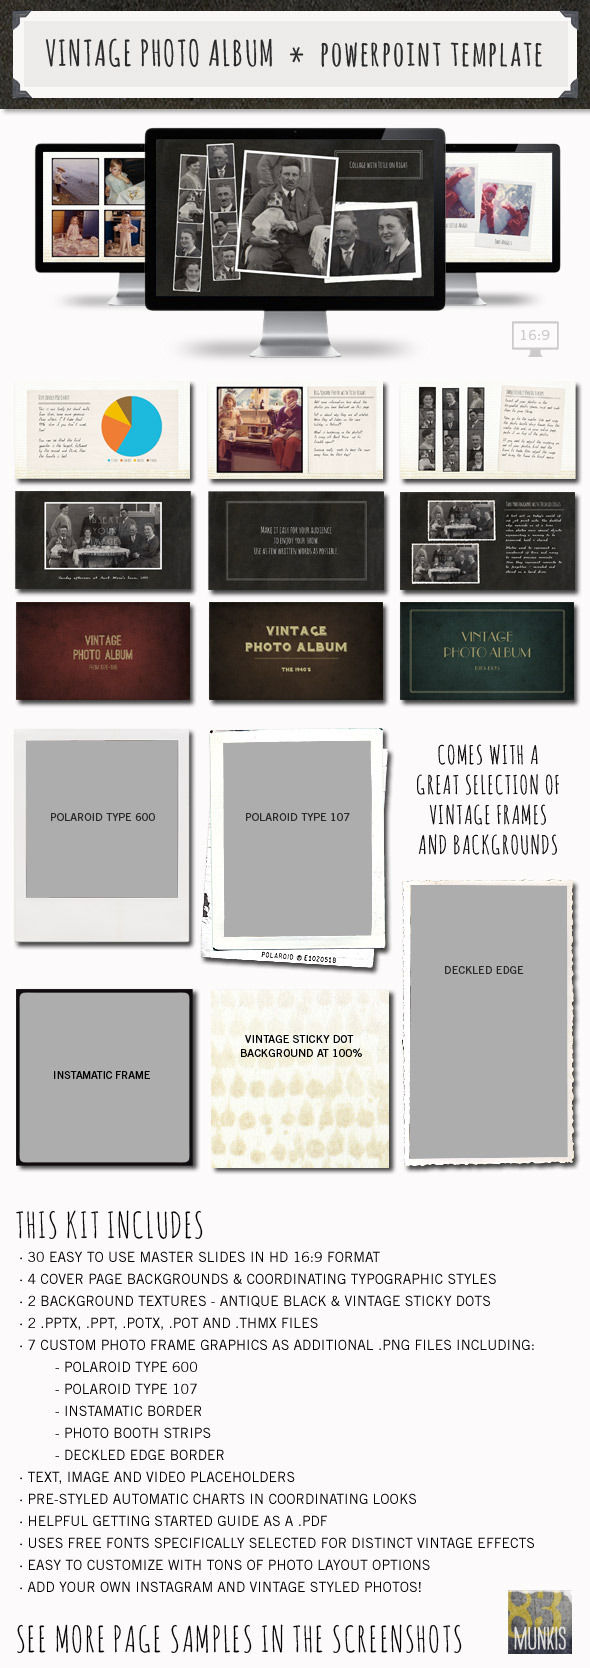 discover vintage photo album powerpoint template your number one source. Black Bedroom Furniture Sets. Home Design Ideas